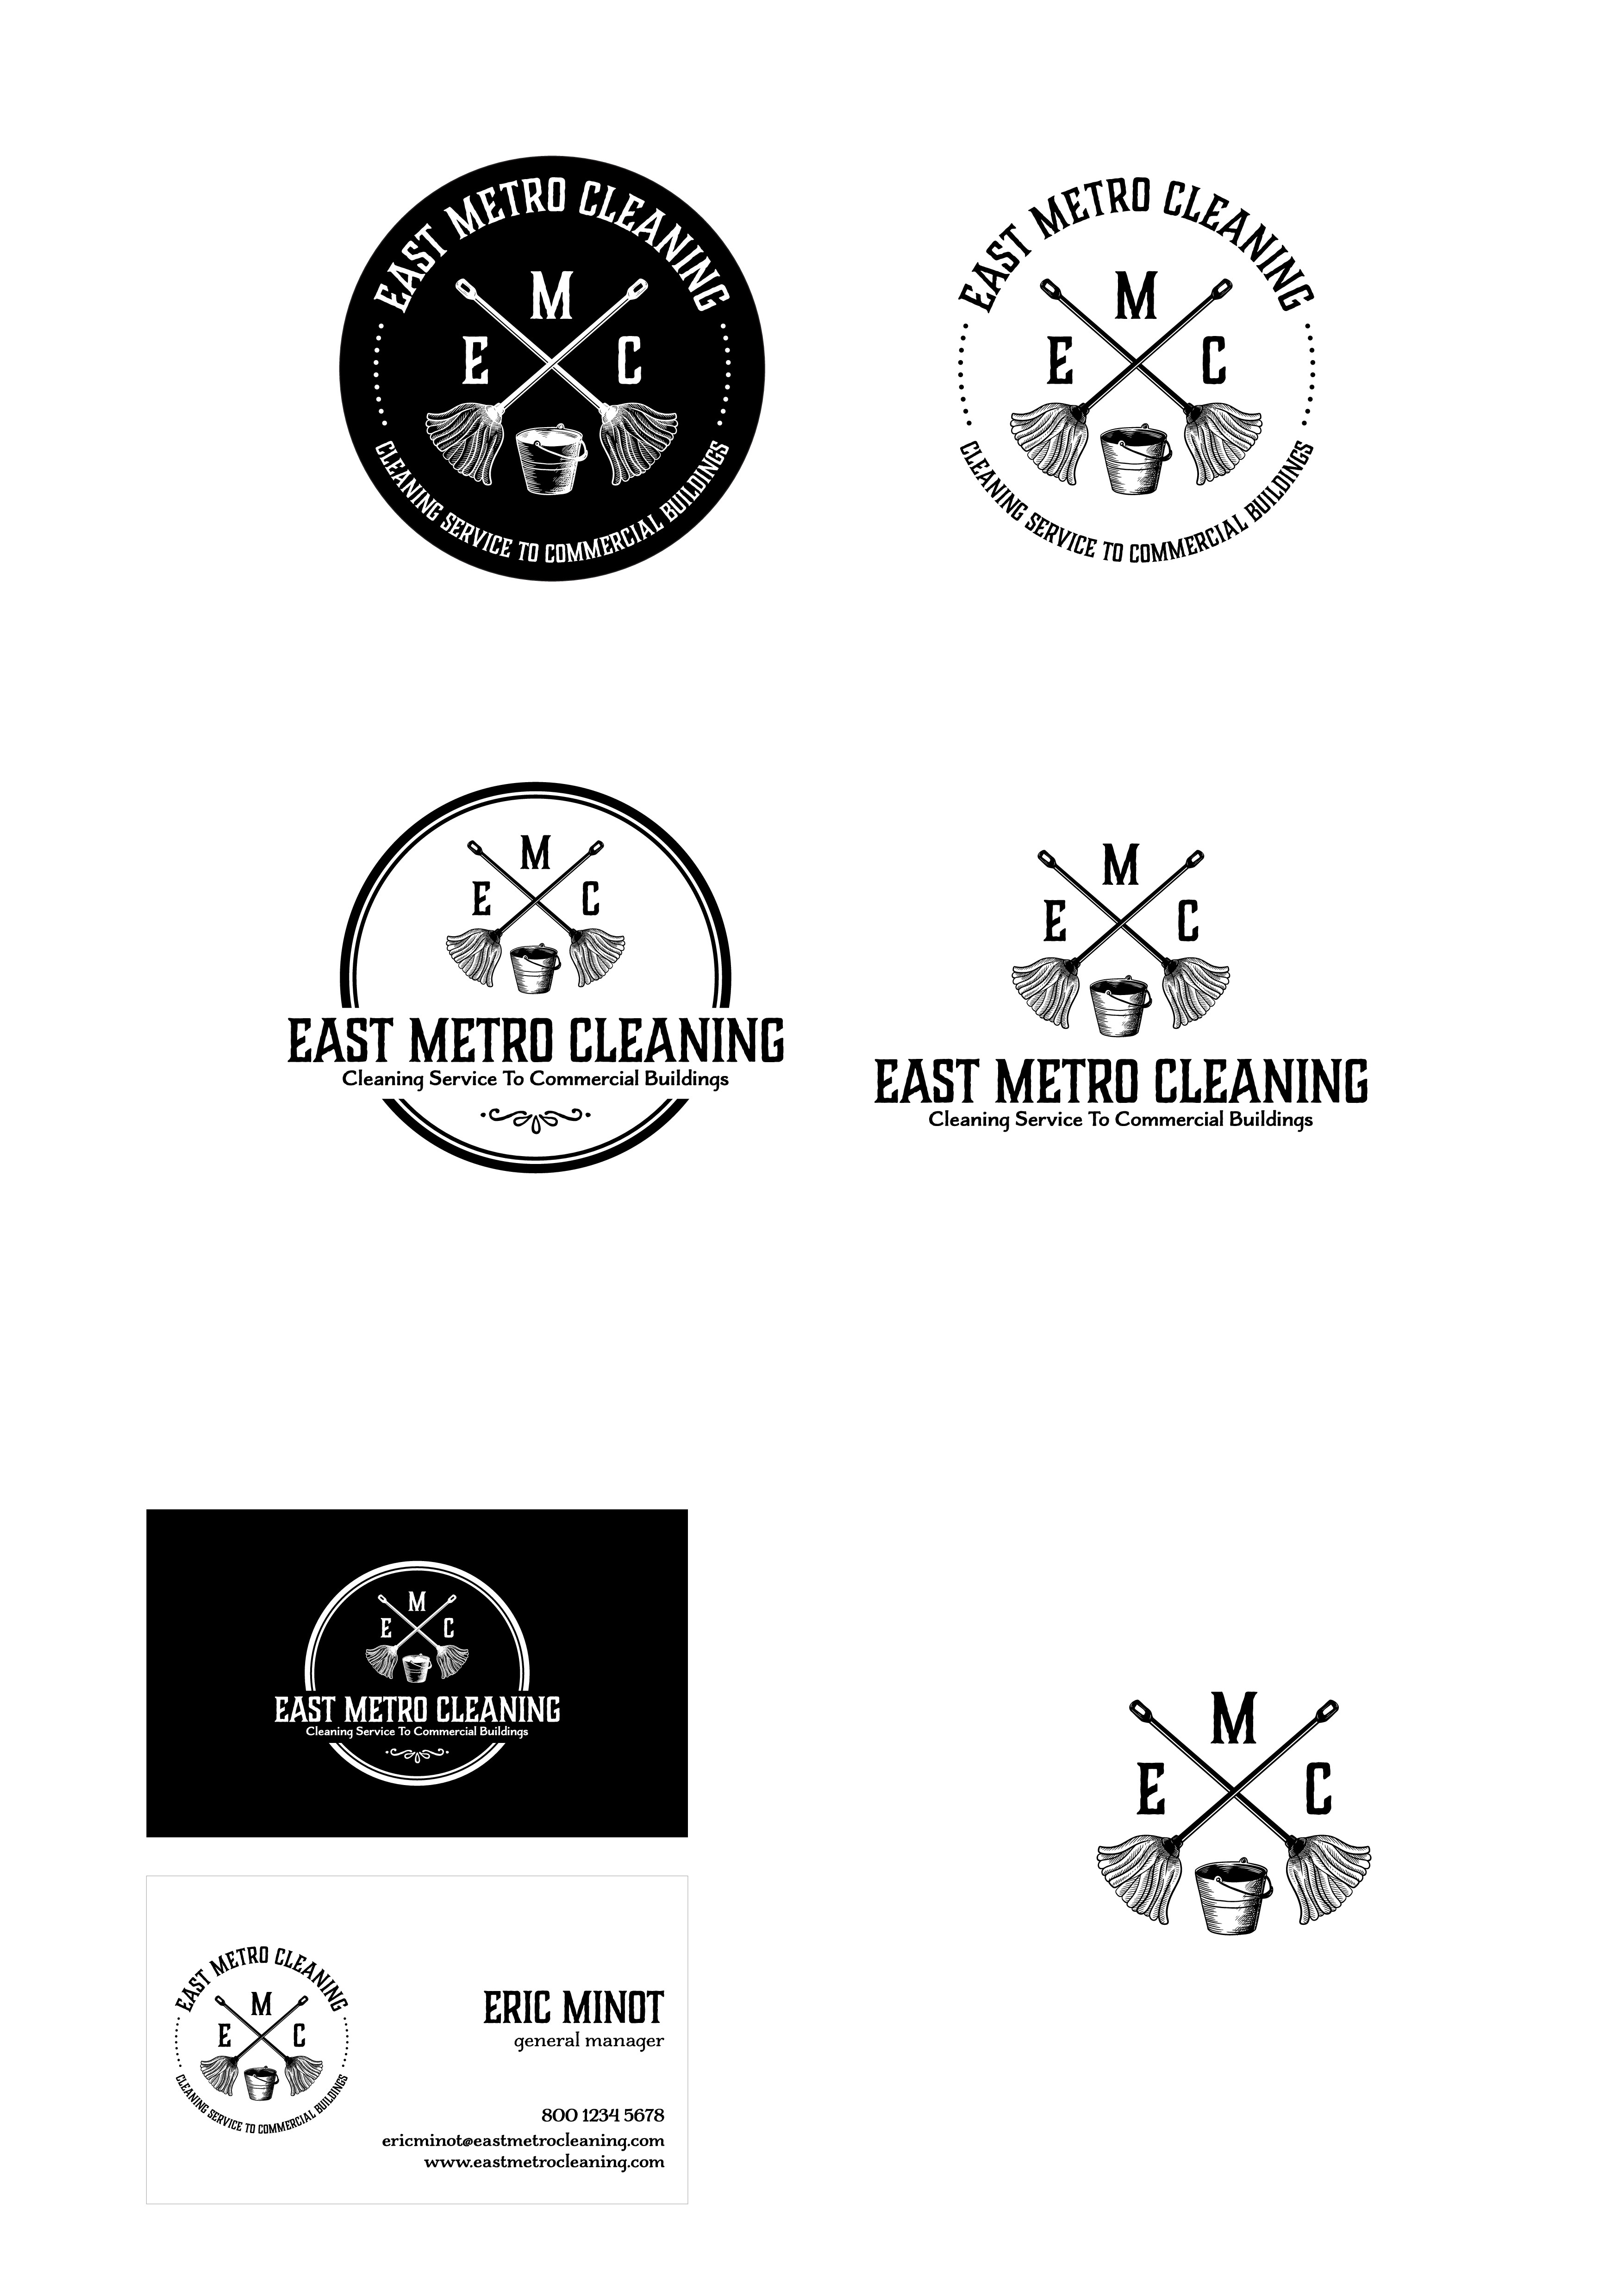 Create a 'hipster' style logo and business card for my cleaning company.